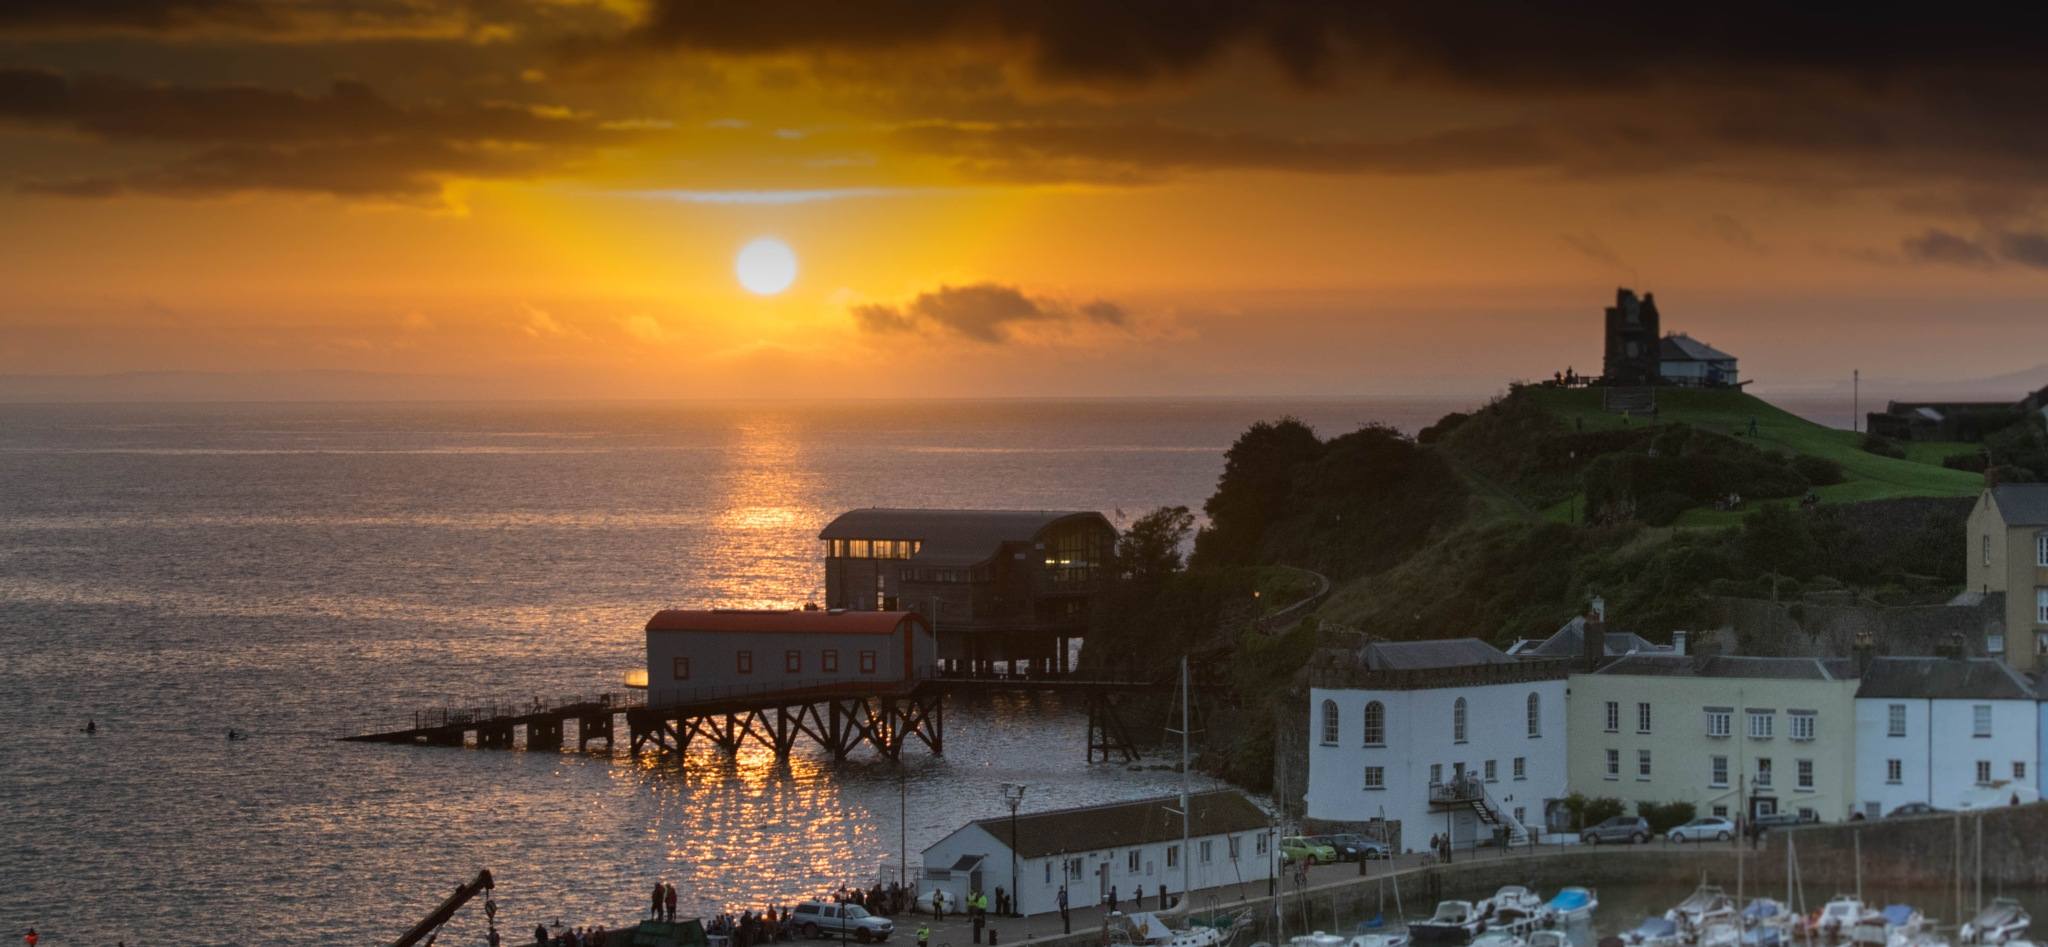 Sunrise over Tenby by ianhenry853